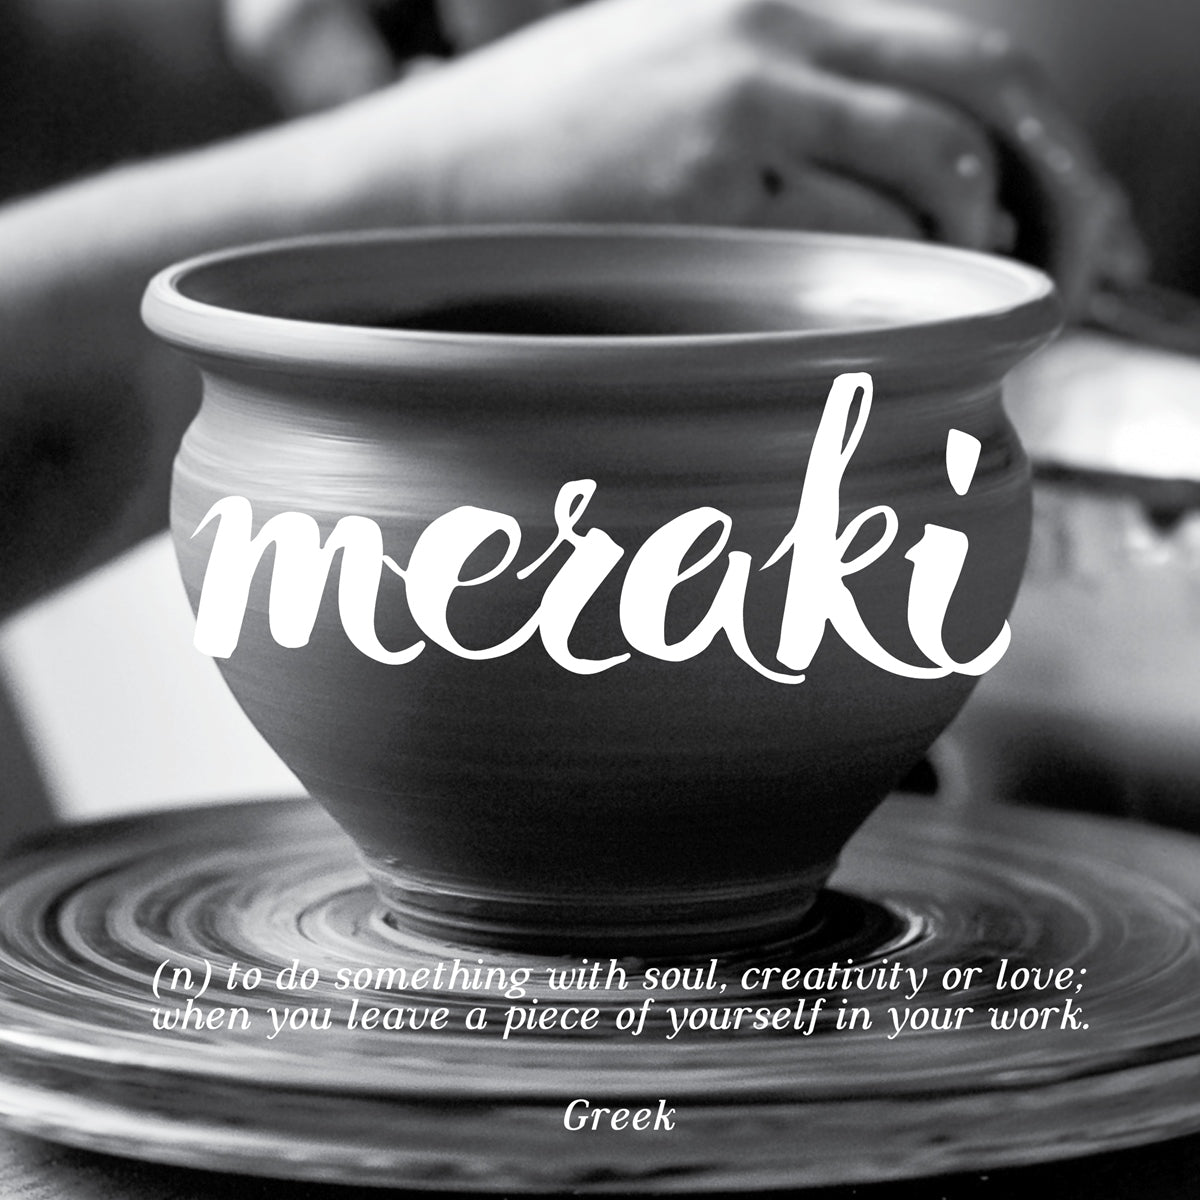 Meraki - to do something with soul, creativity or love, when you leave a piece of yourself in your work, LetterNote Joy of Living